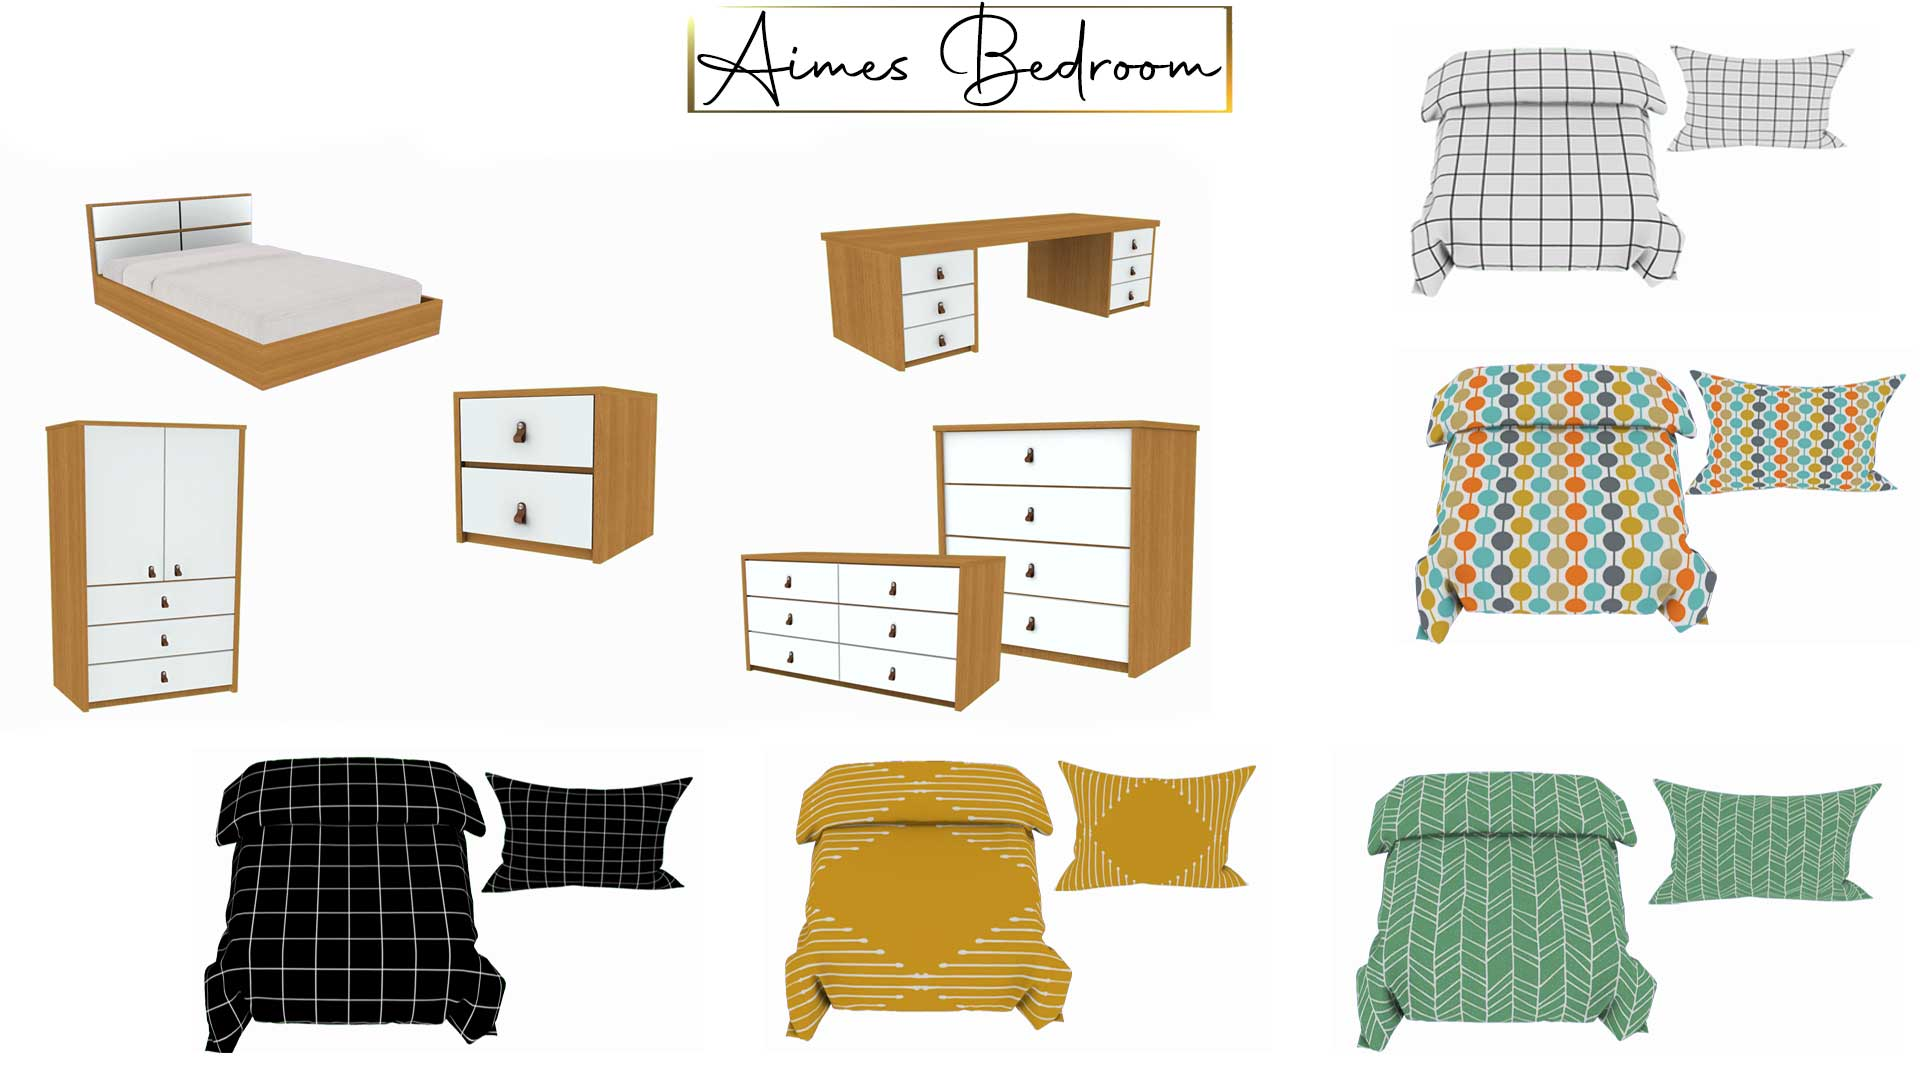 Aimes Bedroom, high quality sims 4 cc, sunkissedlilacs, free sims 4 furniture, sims 4 custom content,